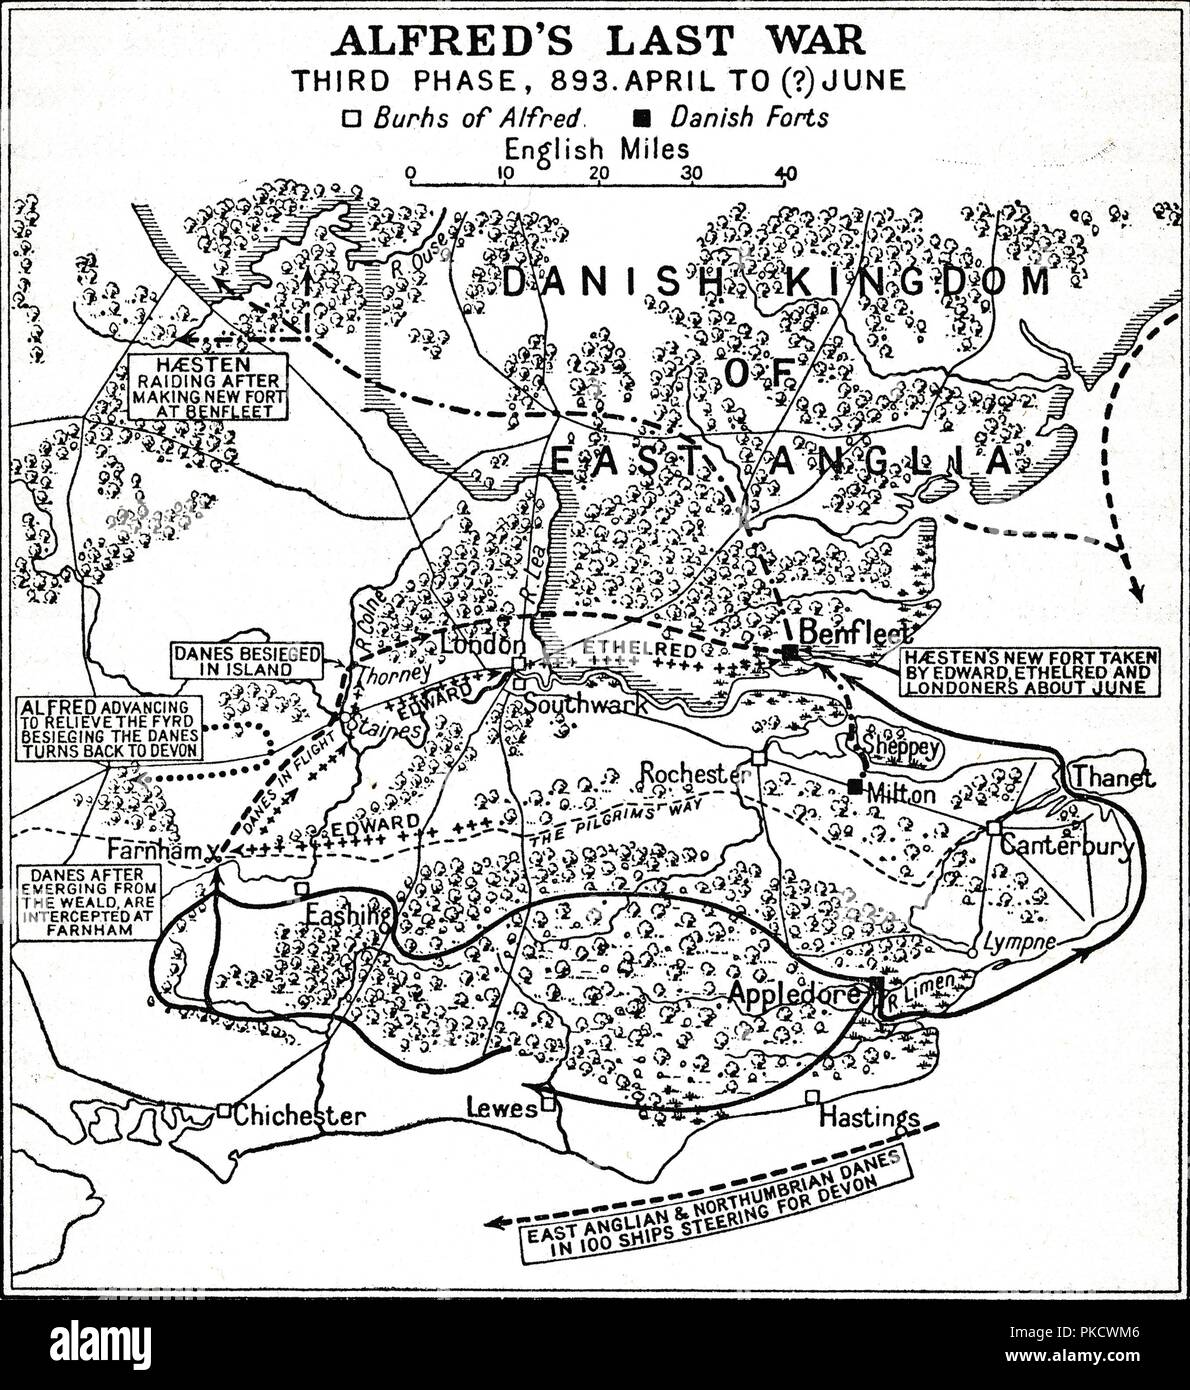 'Alfred's Last War - Third Phase, 893. April to (?) June', (1935). Map of the south-east of England, showing 'Burhs' (Old English fortifications) of the Anglo-Saxon King Alfred the Great, Danish forts, and significant sites during the period of Viking invasion. From A History of the Anglo-Saxons, Vol. II, by R. H. Hodgkin. [The Clarendon Press, Oxford, 1935] - Stock Image